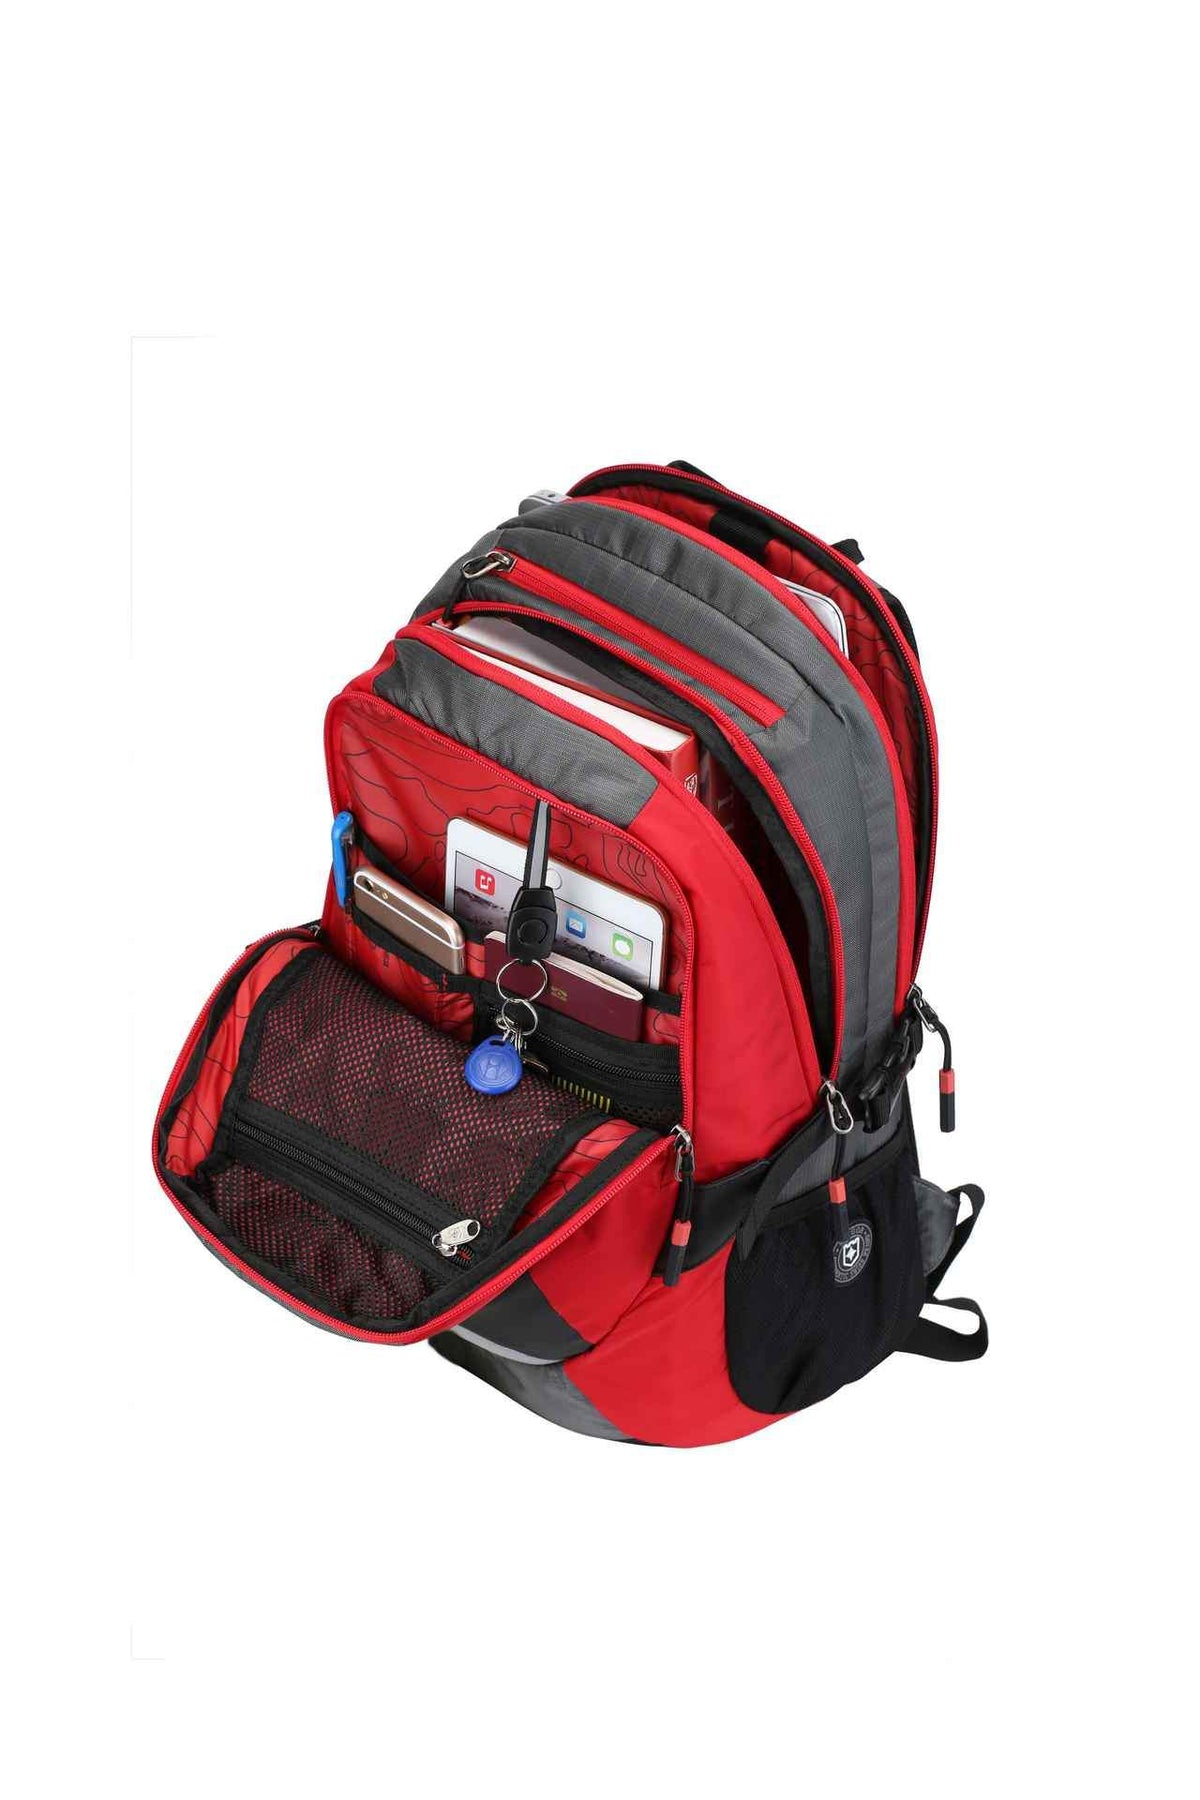 RUIGOR ACTIVE 29 Laptop Backpack Red Grey